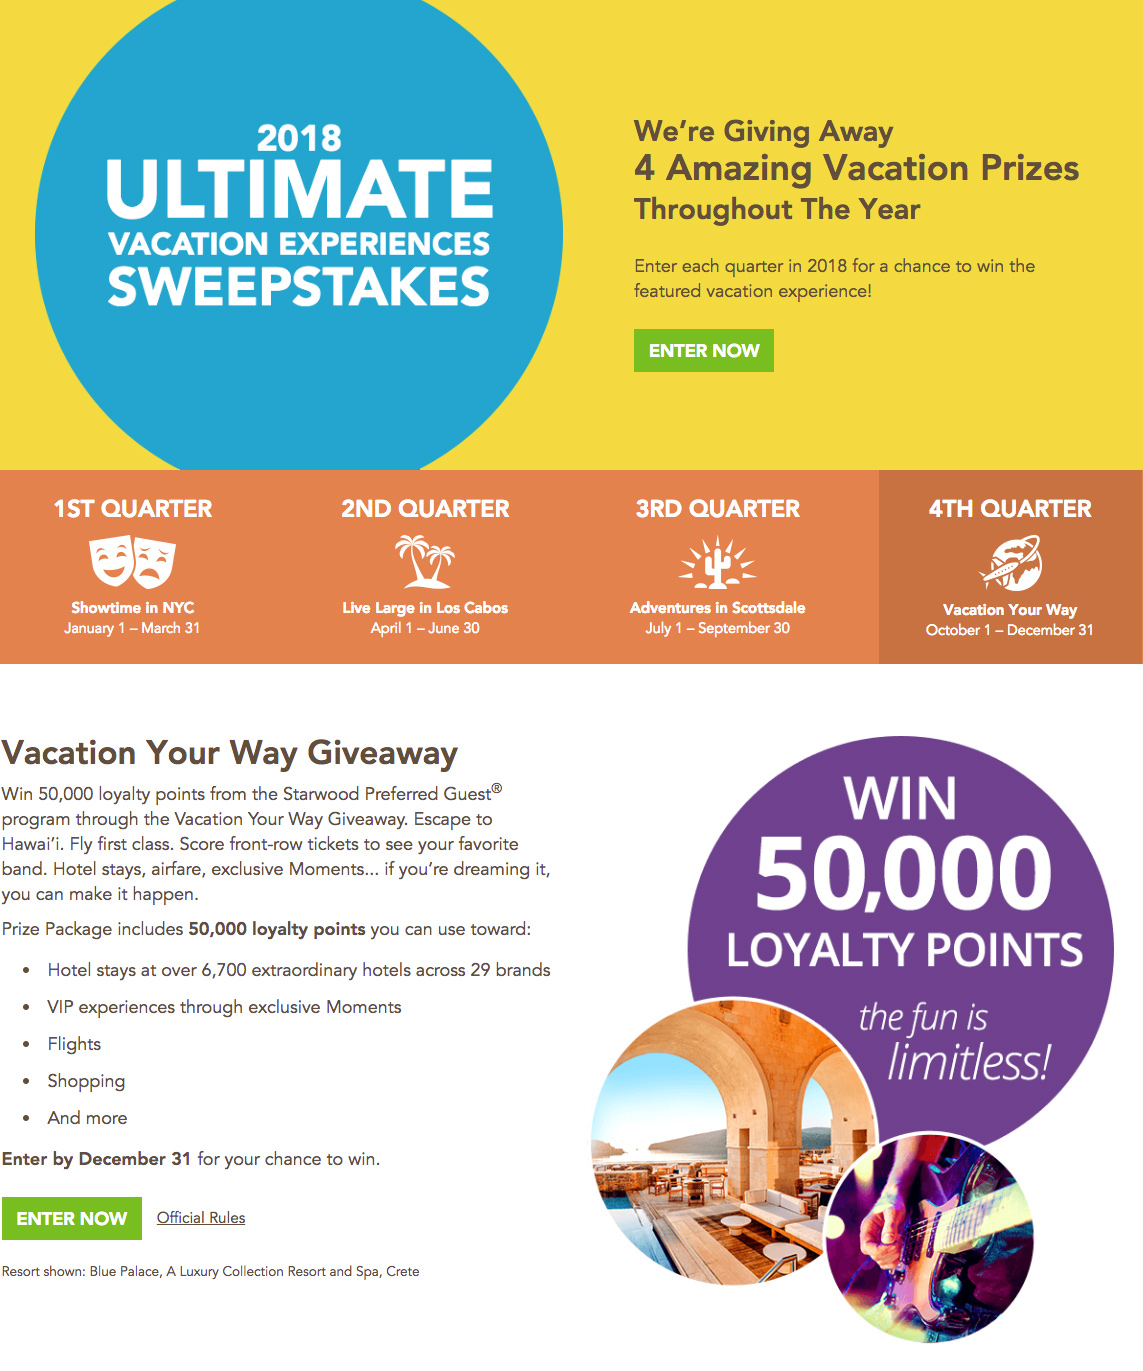 Ultimate Vacation Experiences Sweepstakes 2018 | Vistana™ Signature